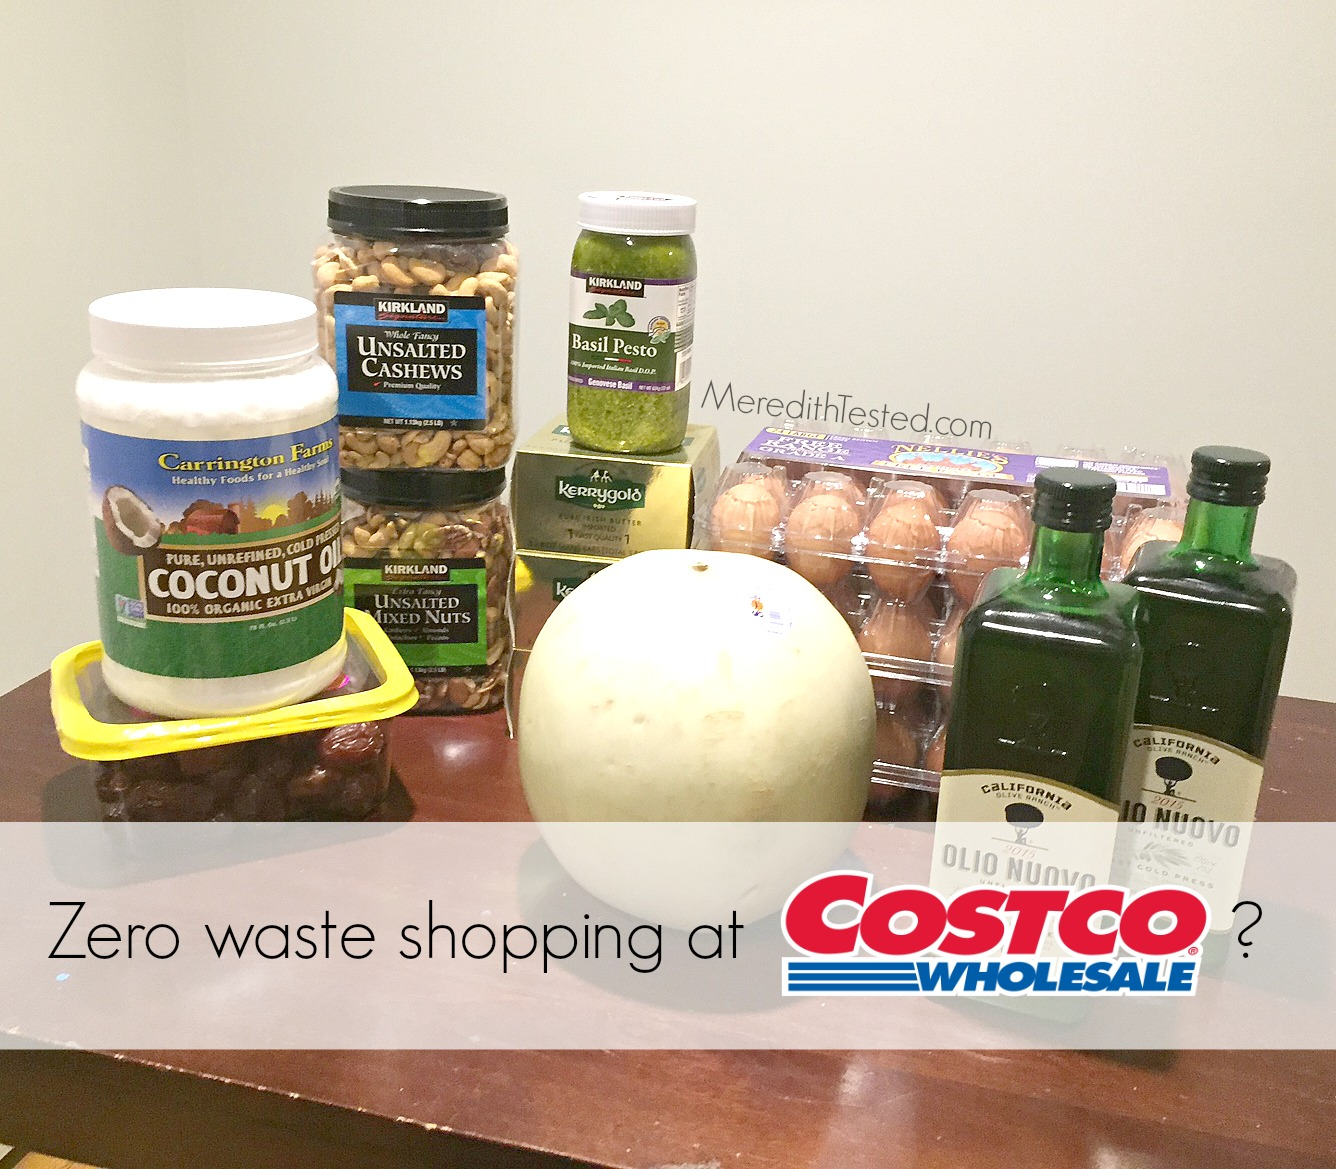 Shopping in bulk, zero waste at Costco